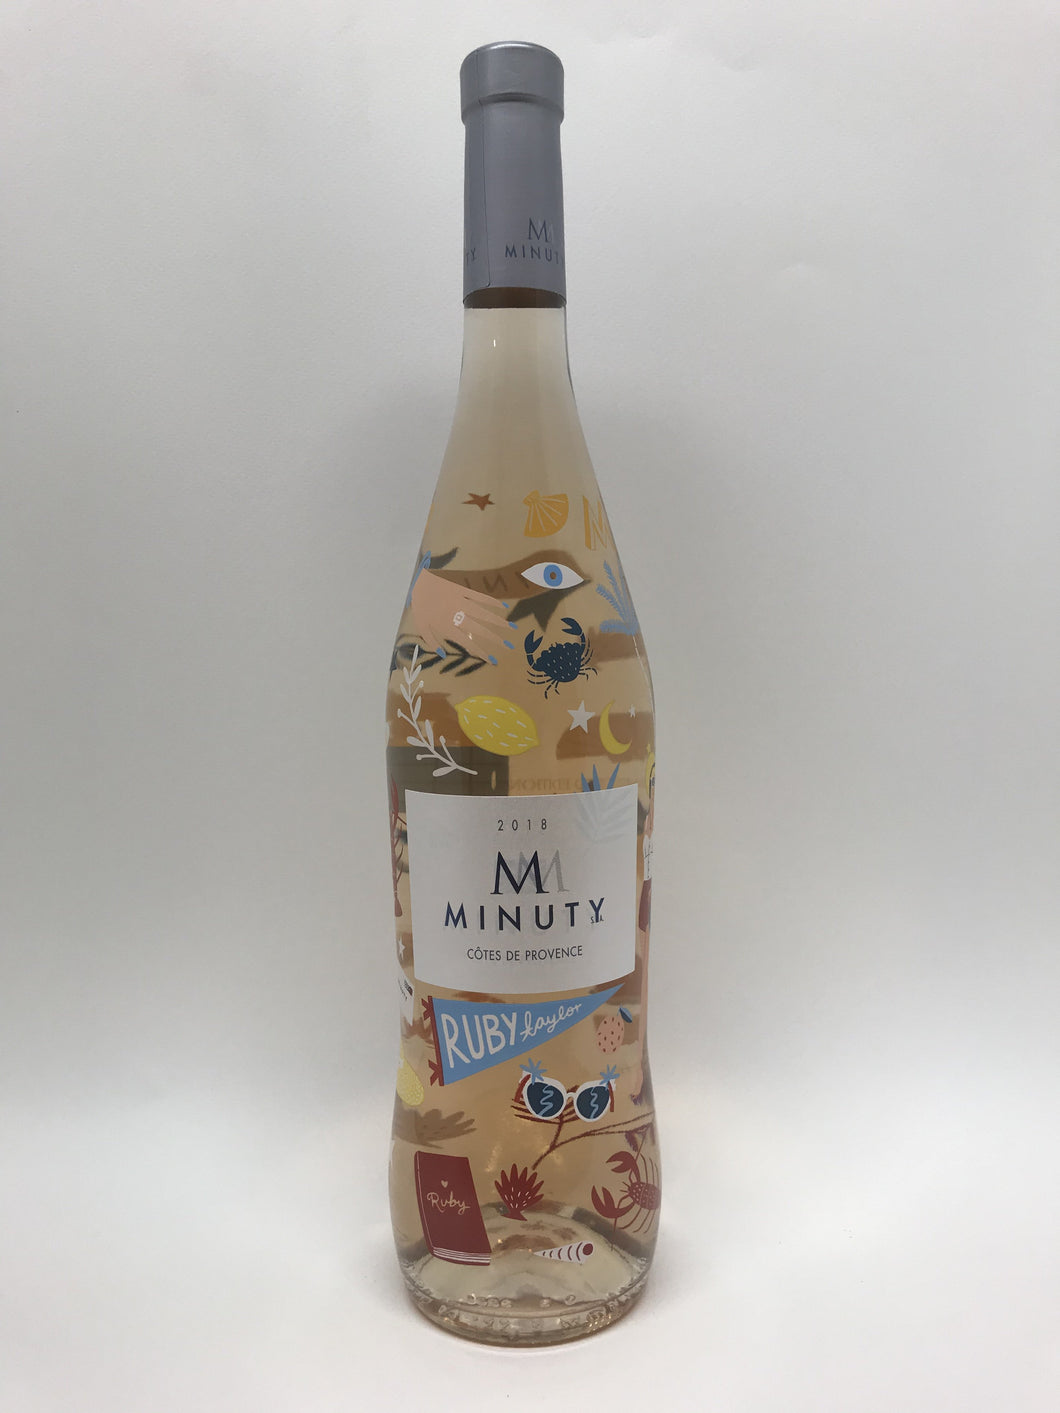 Minuty - M, Cotes de Provence, Limited Edition Ruby Taylor